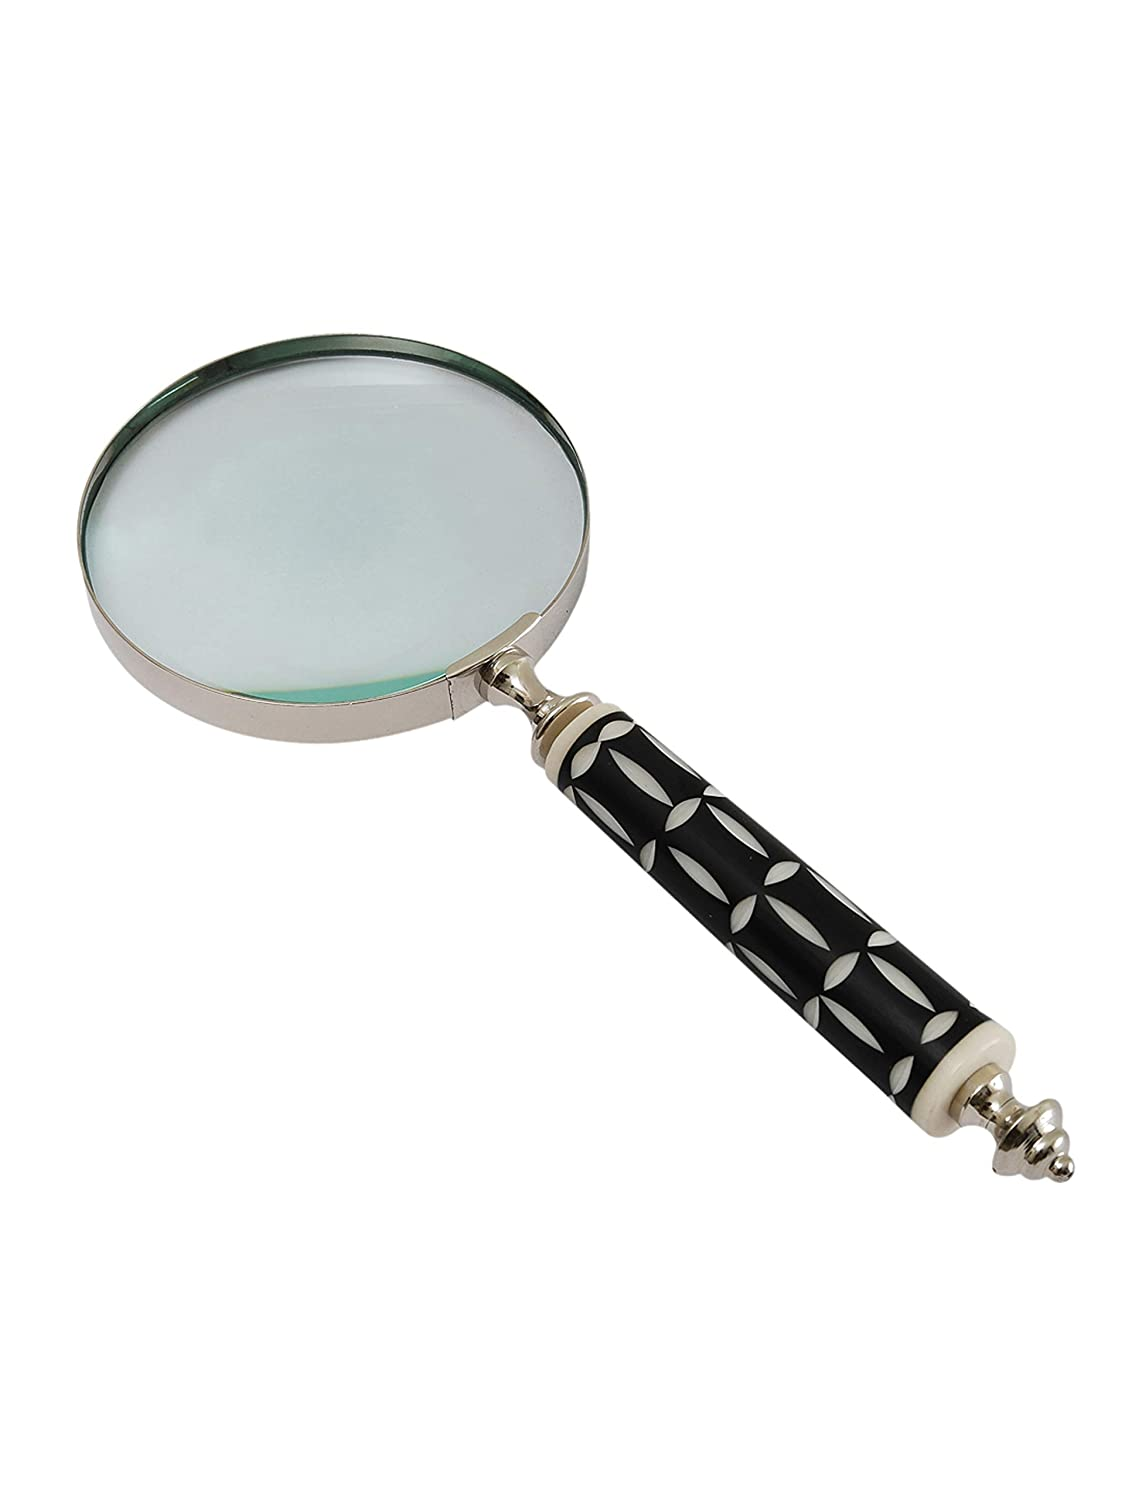 Magnifying Glass for Reading Nickle Plated Brass Handcrafted Resin Handle Magnifier with 10X Capacity